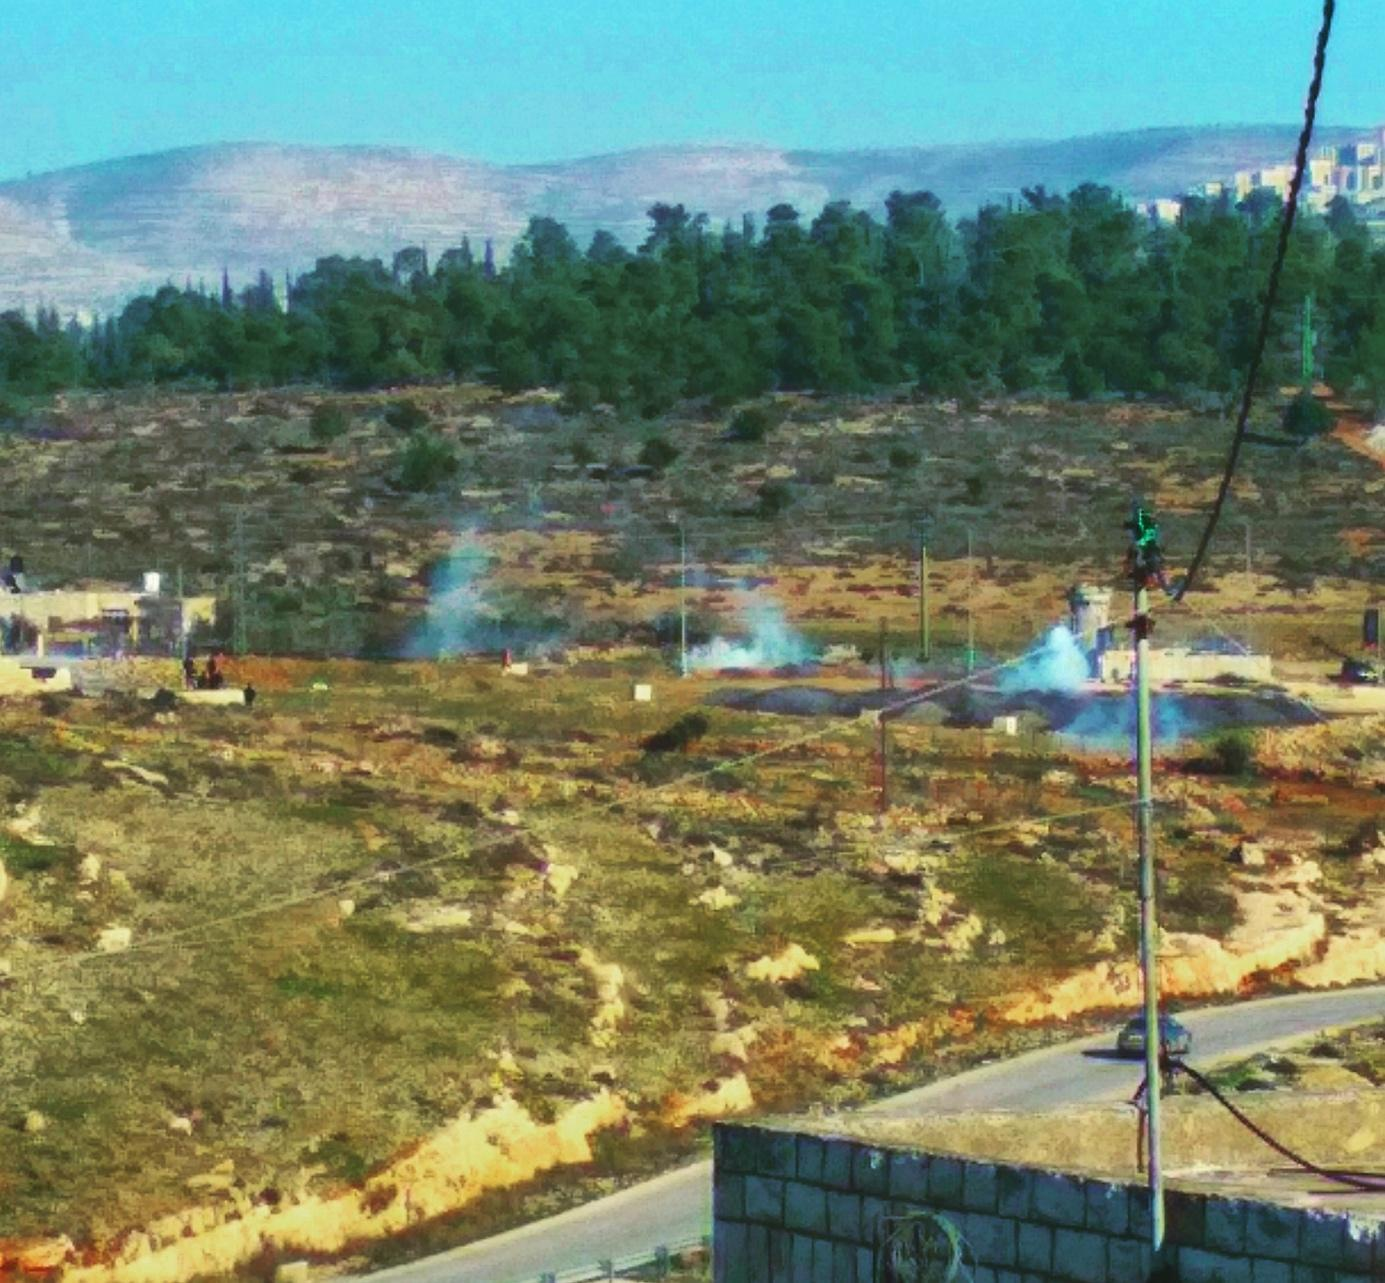 Usual scenes in the village of Nabi Saleh: A sniper tower at the entrance to the village and frequent tear gassing by Israeli soldiers.